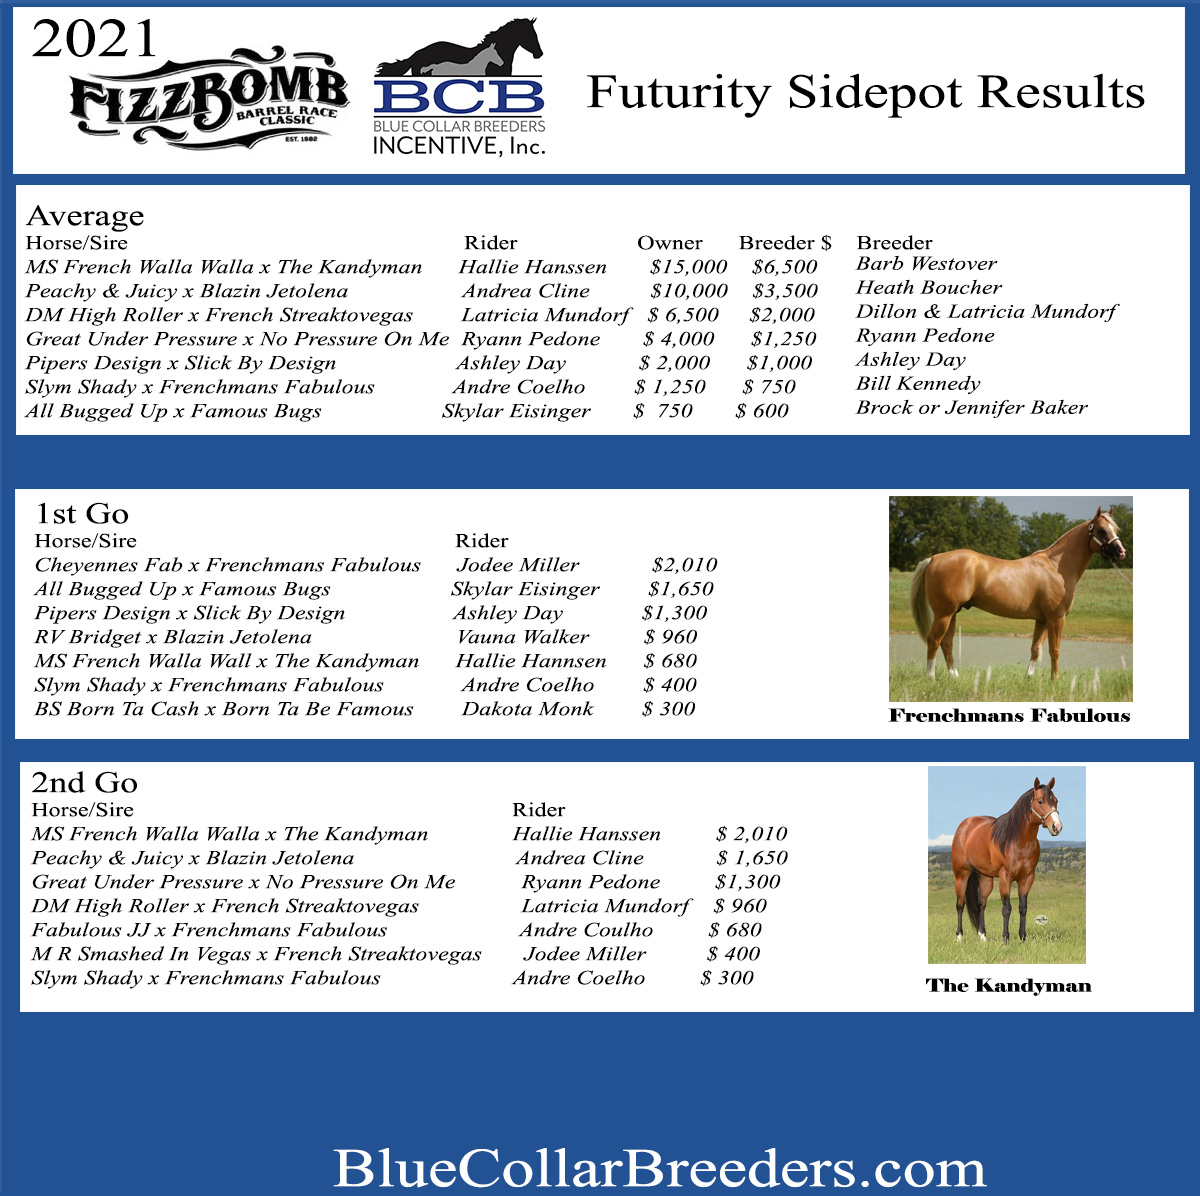 2021 Blue Collar Breeders Fizz Bomb Futurity Sidepot Results.  Your 2021 Champion is Hallie Hannsen on Ms Walla Walla by The Kandyman.  $55K paid out!